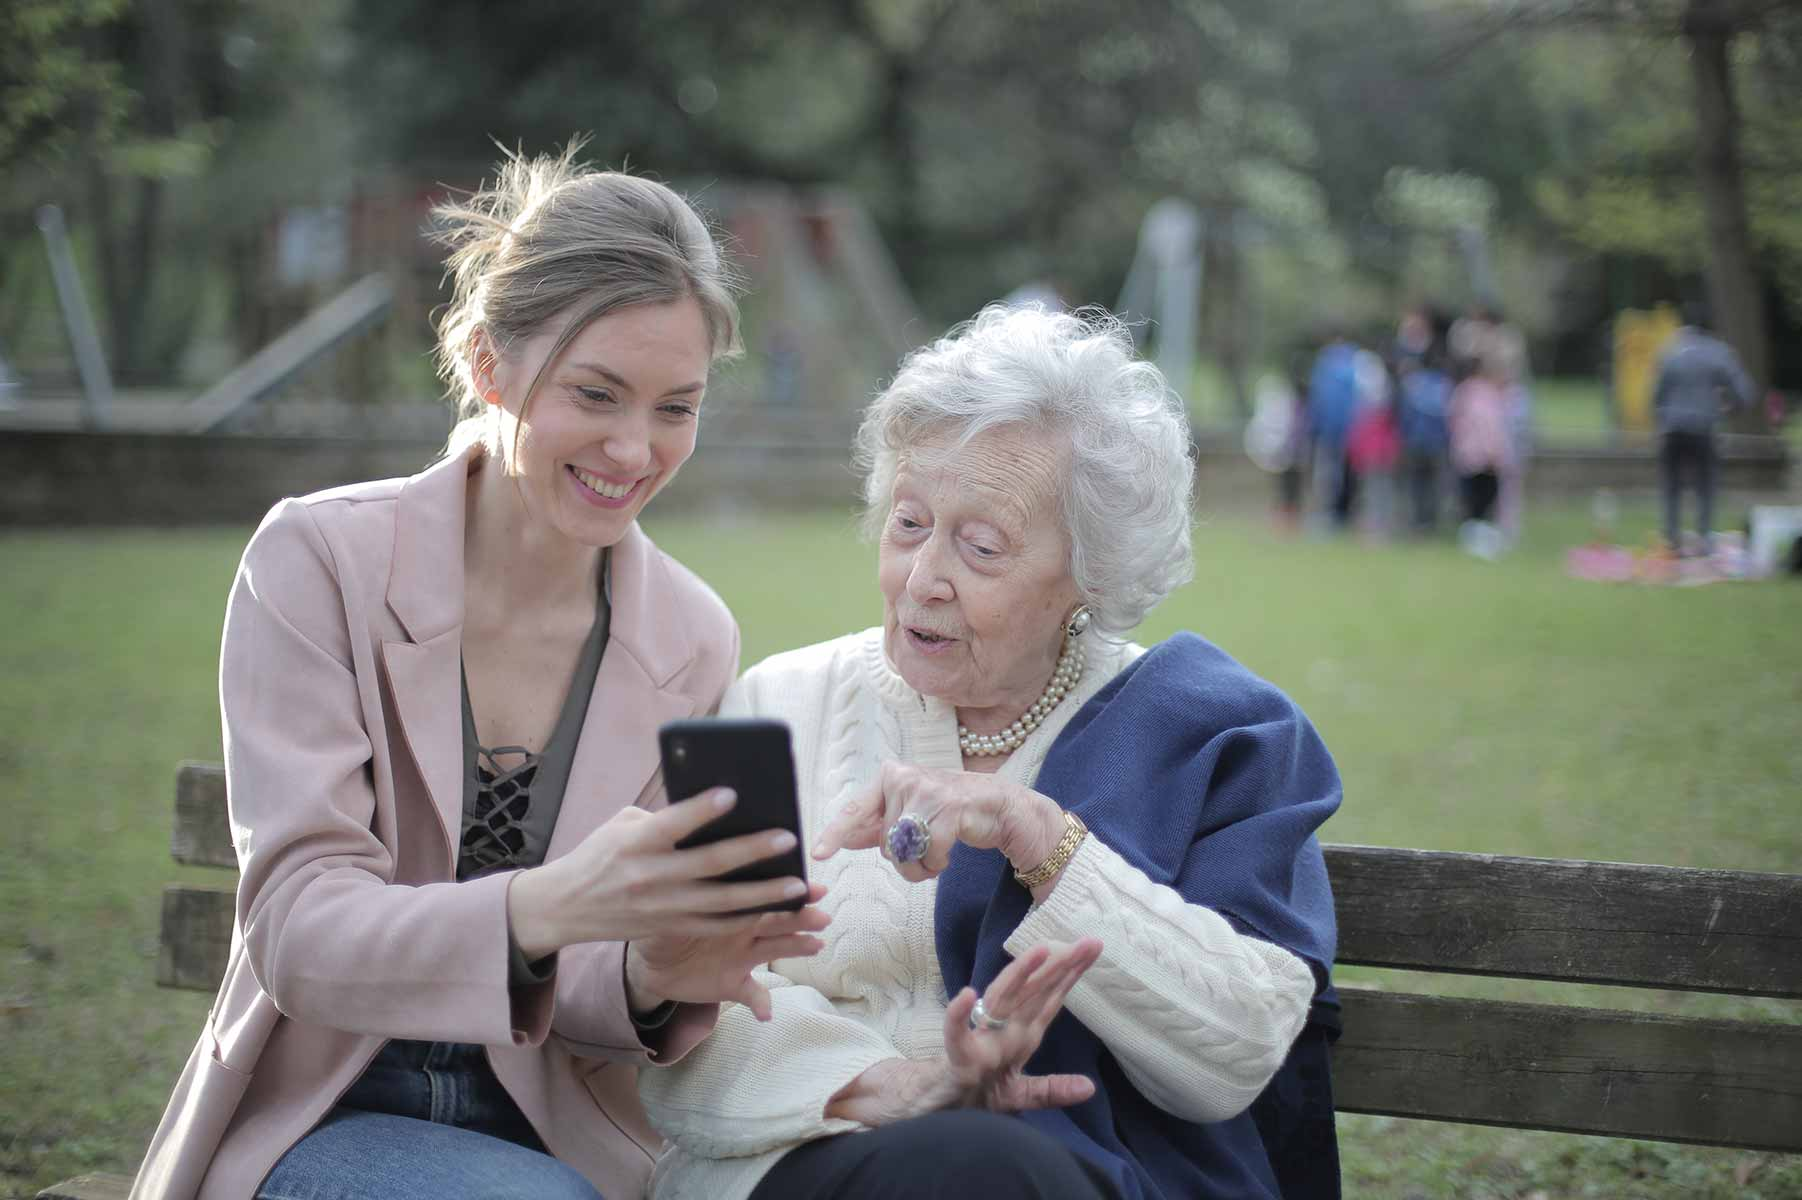 A young woman and an older adult woman sit together on a bench looking at a phone